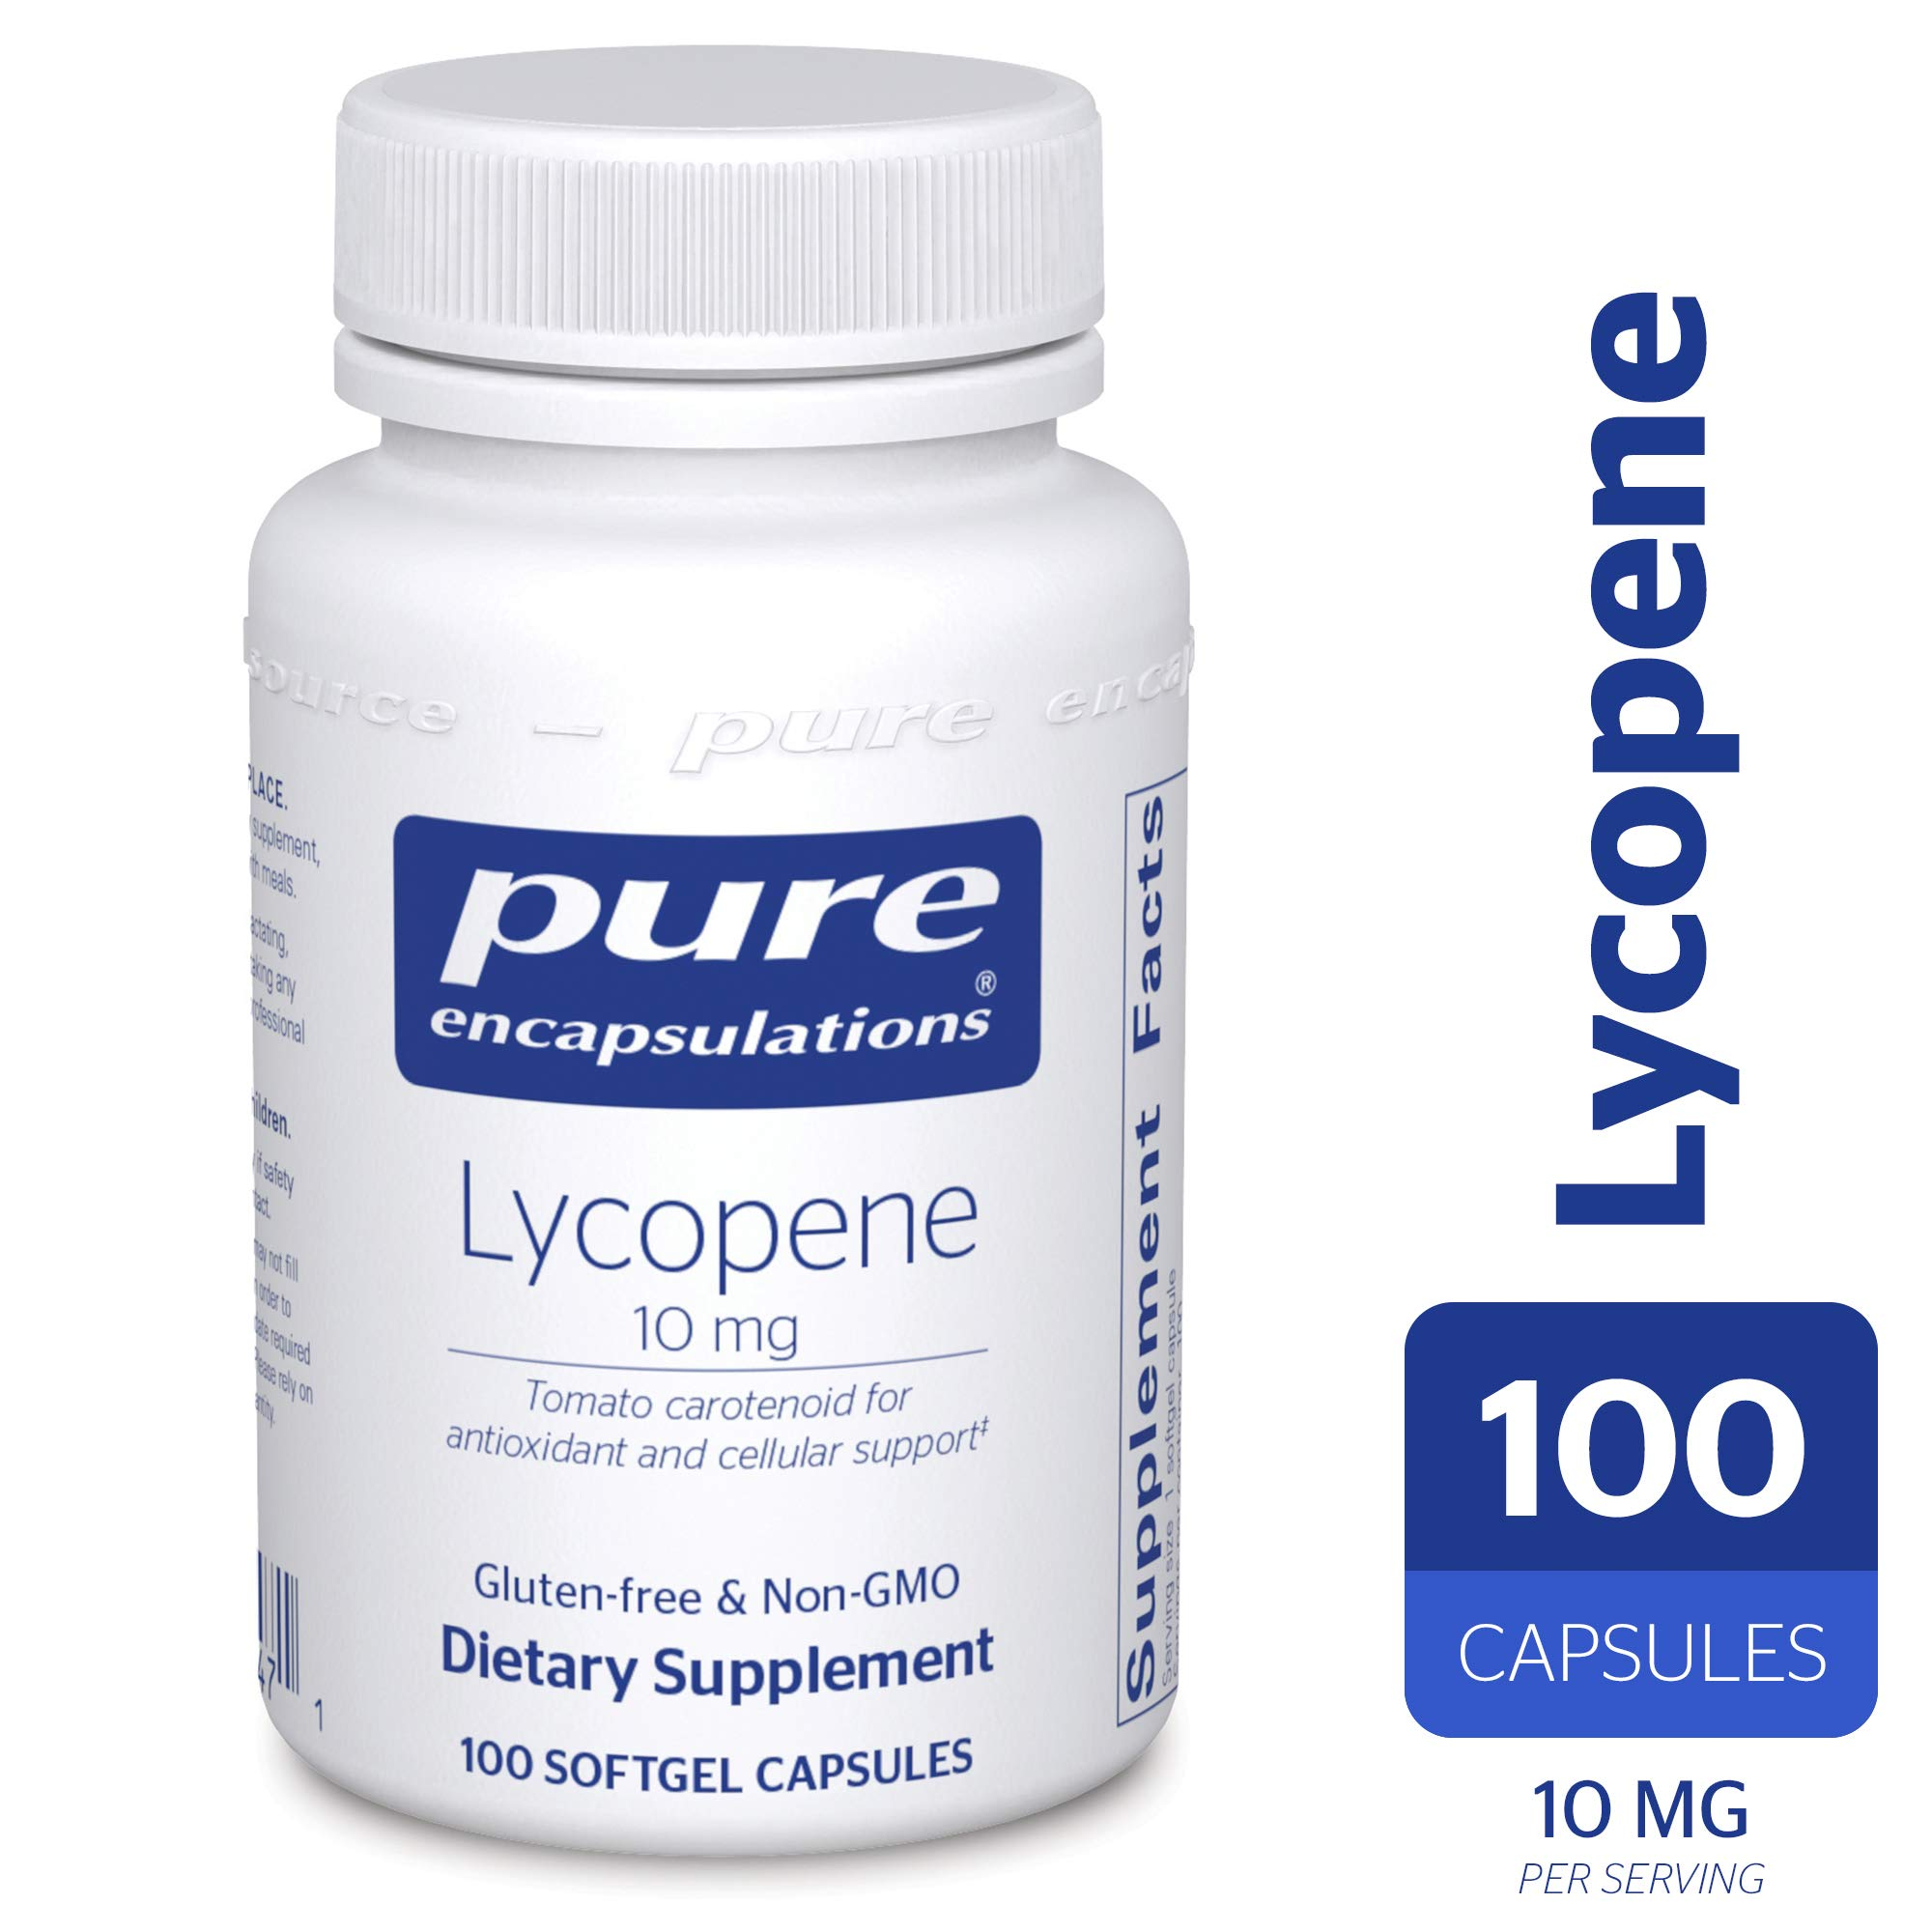 Pure Encapsulations - Lycopene 10 mg - Dietary Supplement for Prostate, Cellular and Macular Support* - 100 Softgel Capsules by Pure Encapsulations